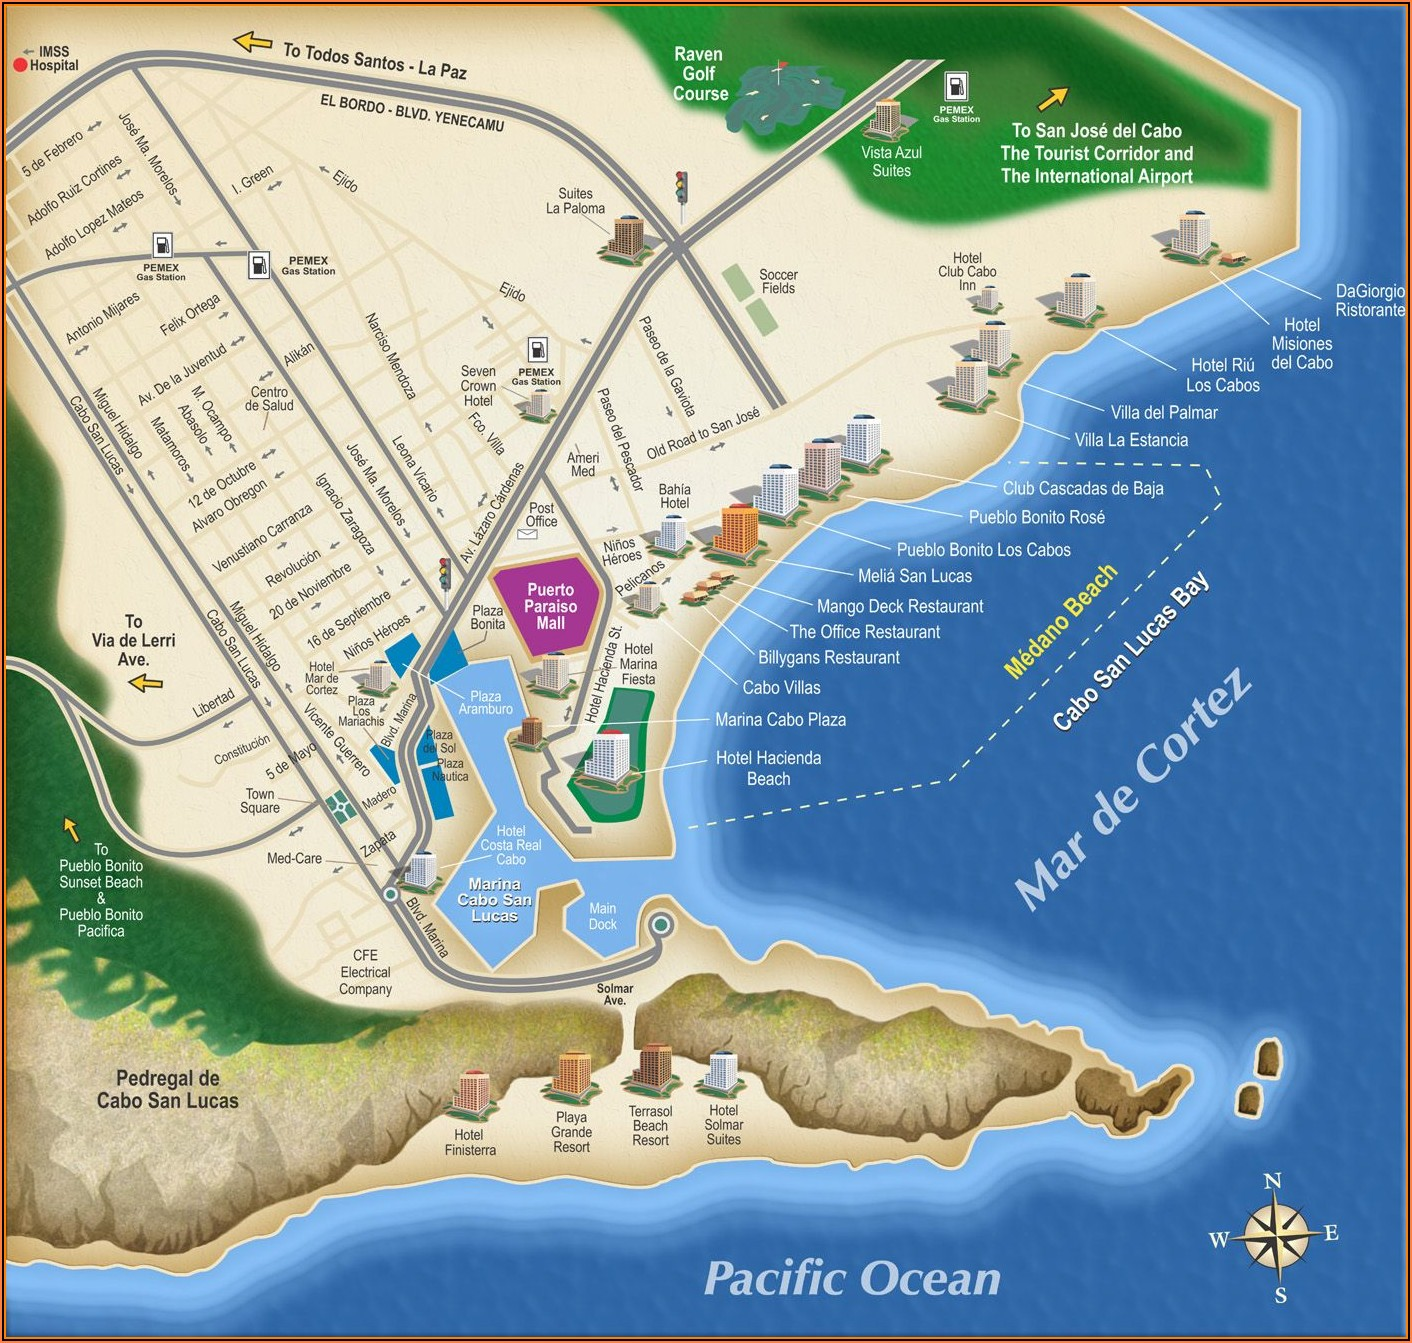 Los Cabos Hotel Zone Map